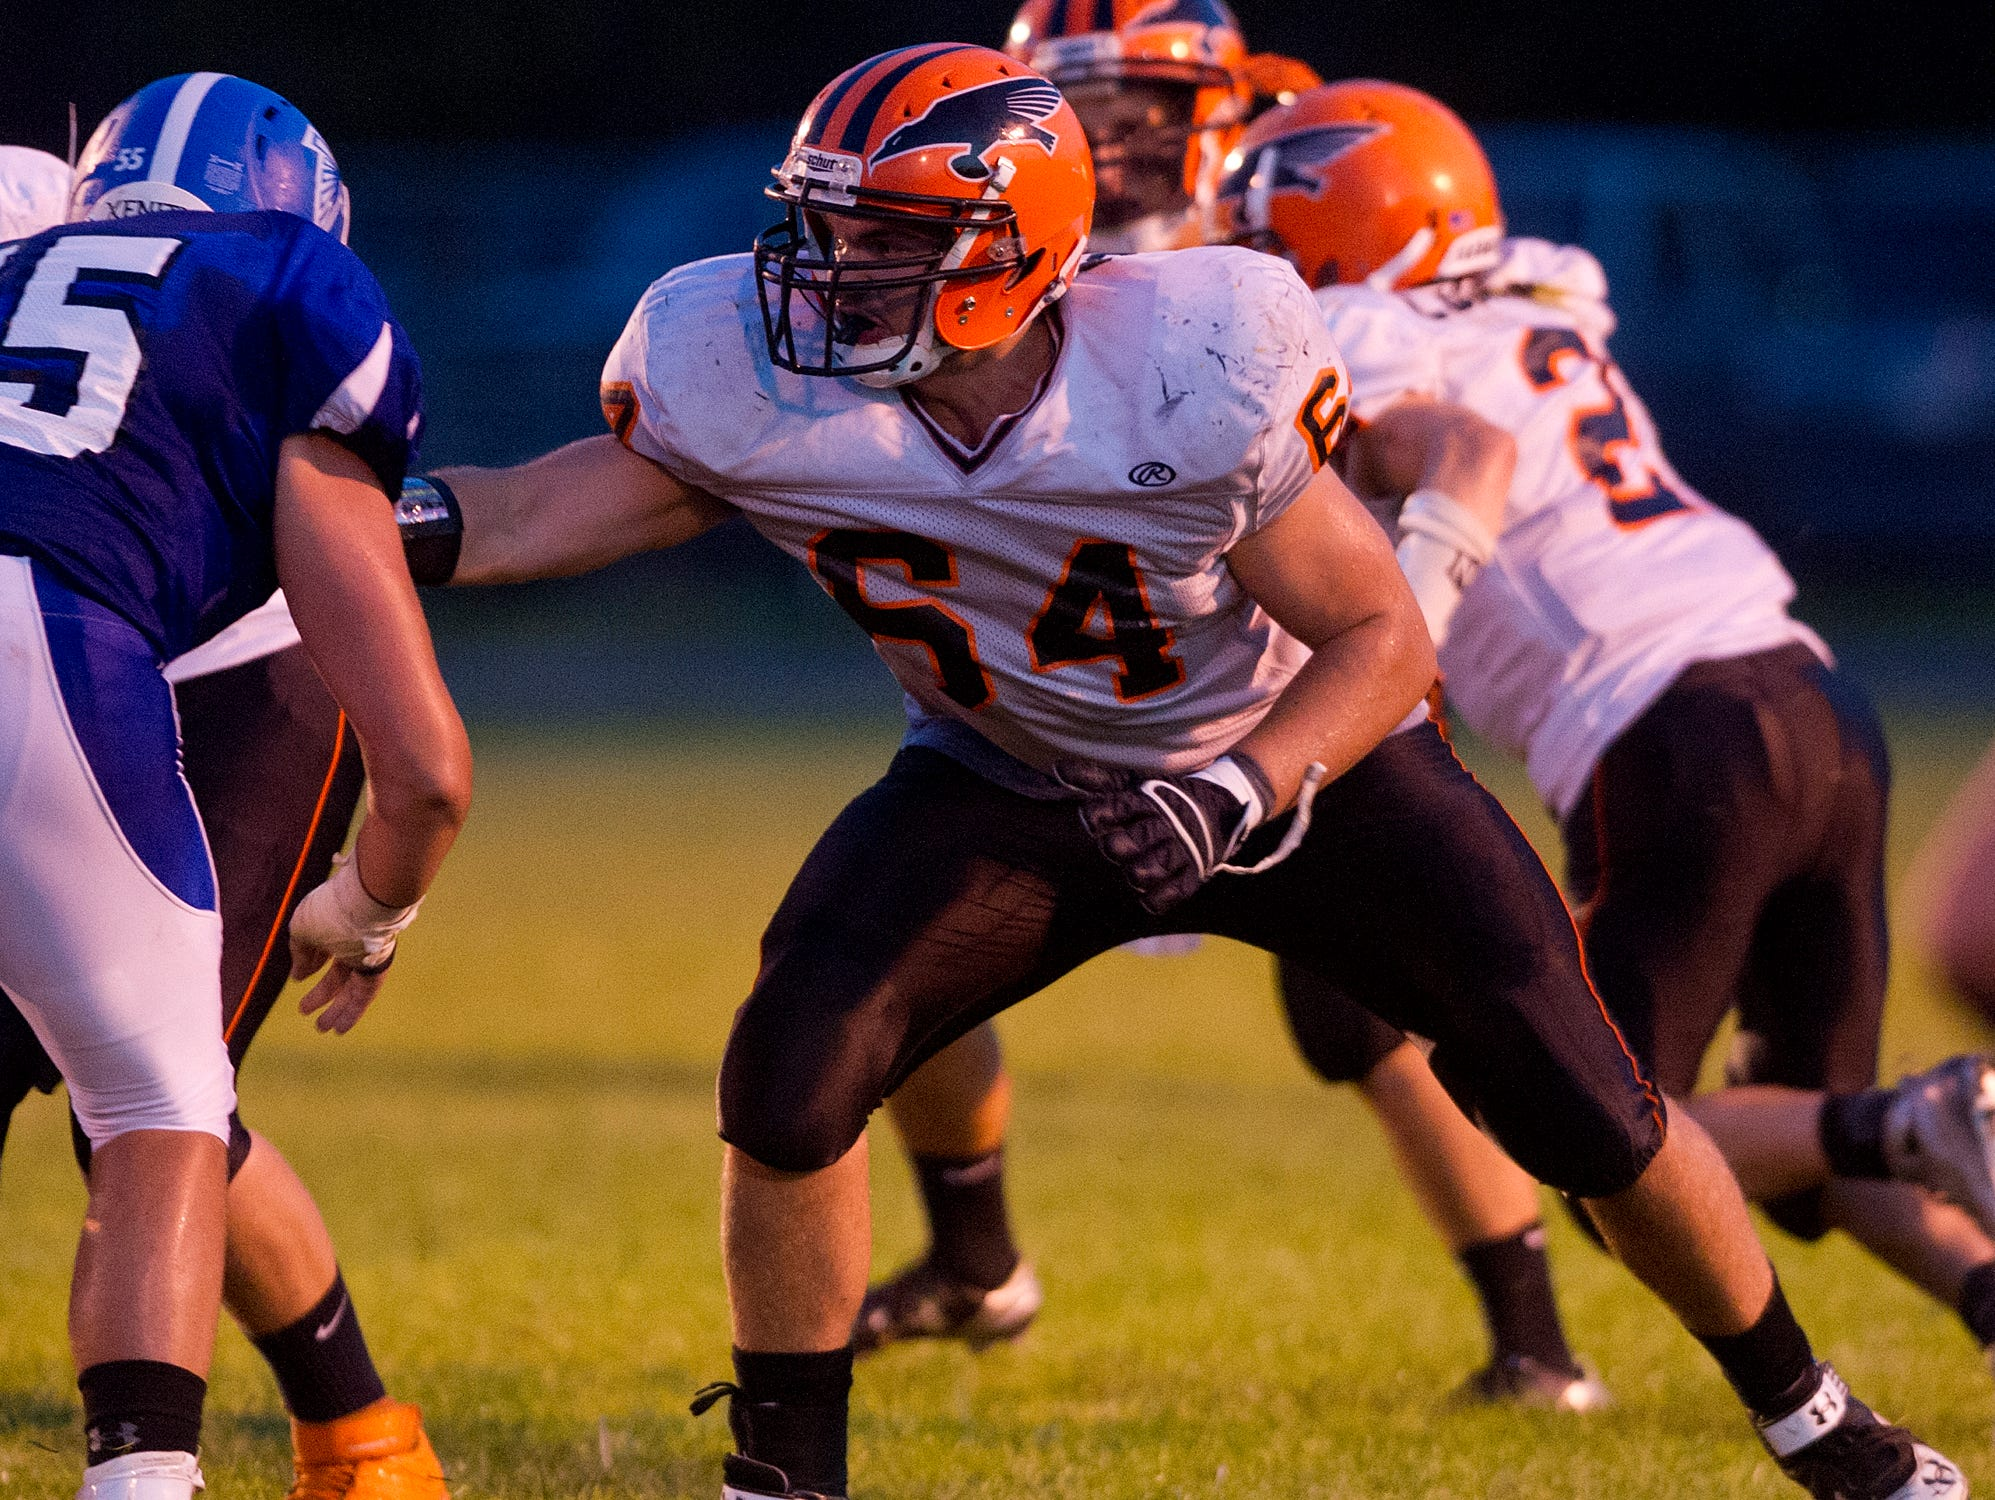 Iola-Scandinavia's Ryan Bauer during the Central Wisconsin Conference football game against Amherst, Sept. 4.